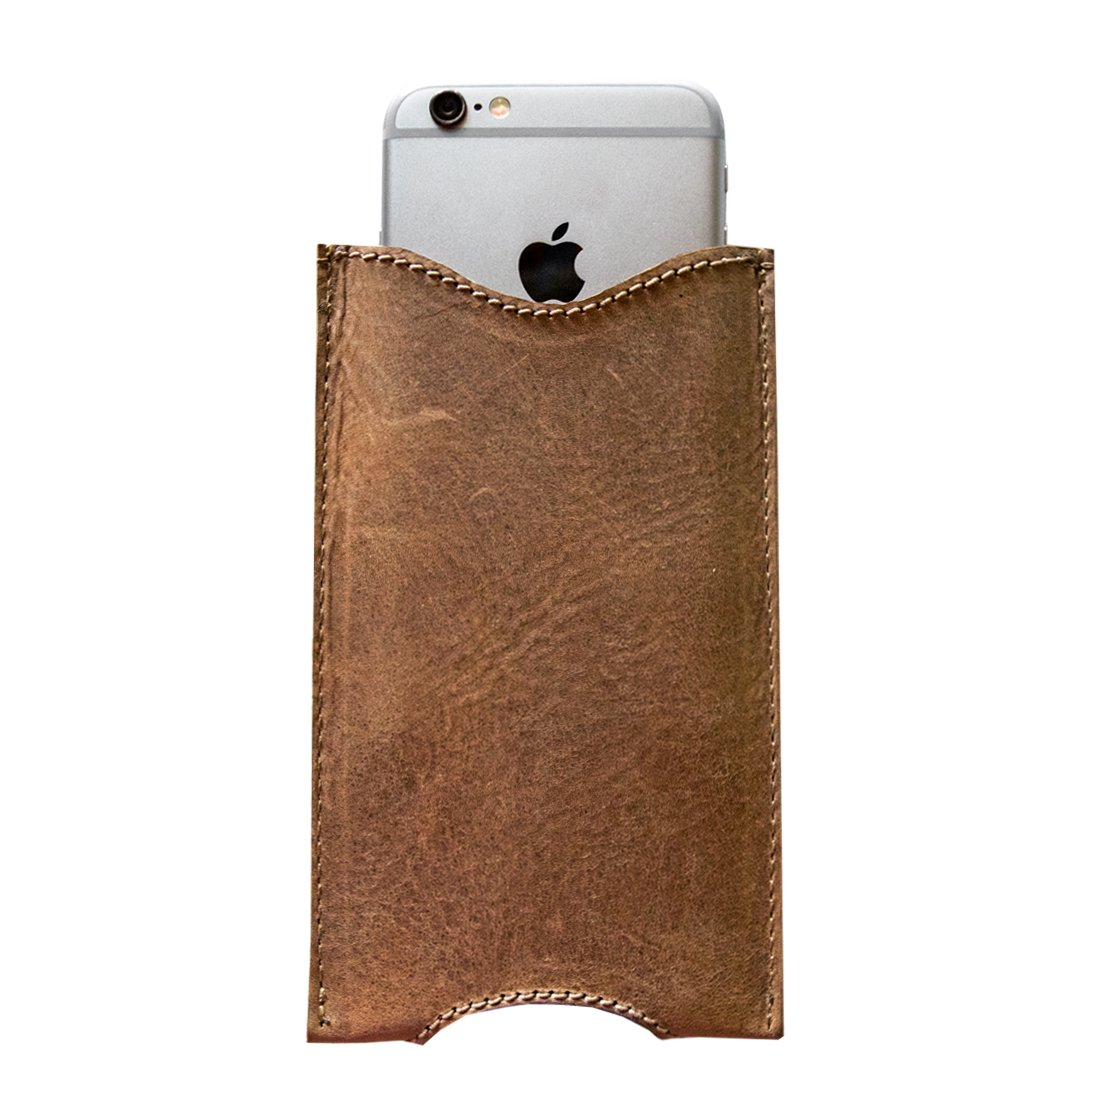 Hide & Drink Leather Handmade Sleeve for  iPhone 6 Plus - Bourbon Brown by Hide & Drink